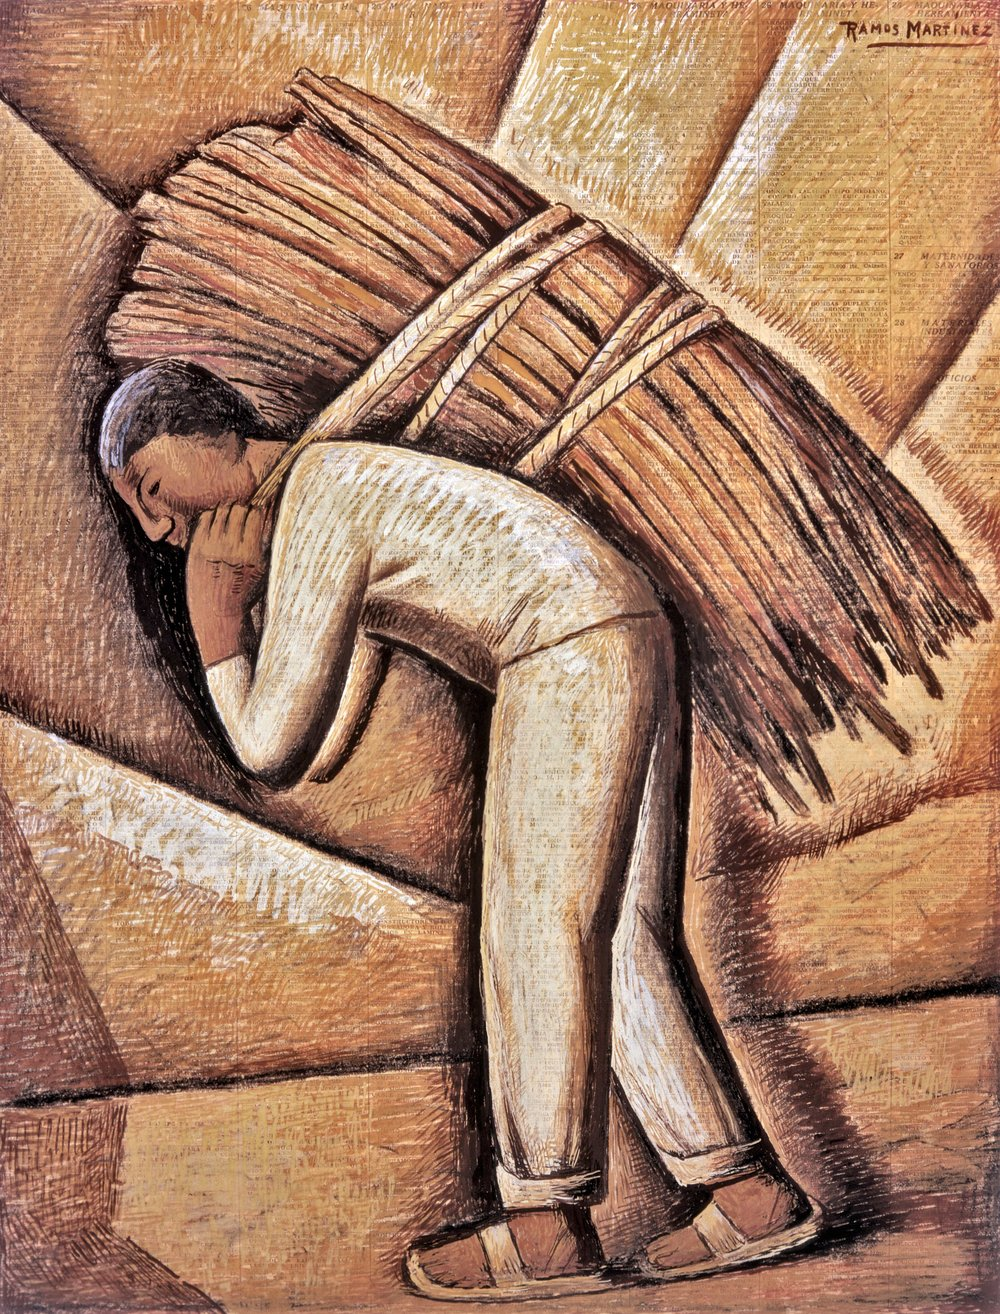 El Cargador de Leña / The Lumber Carrier  1943 tempera on newsprint / temple sobre papel periódico ( El Universal , October 24, 1943) 23 x 17 inches; 58.4 x 43.2 centímetros